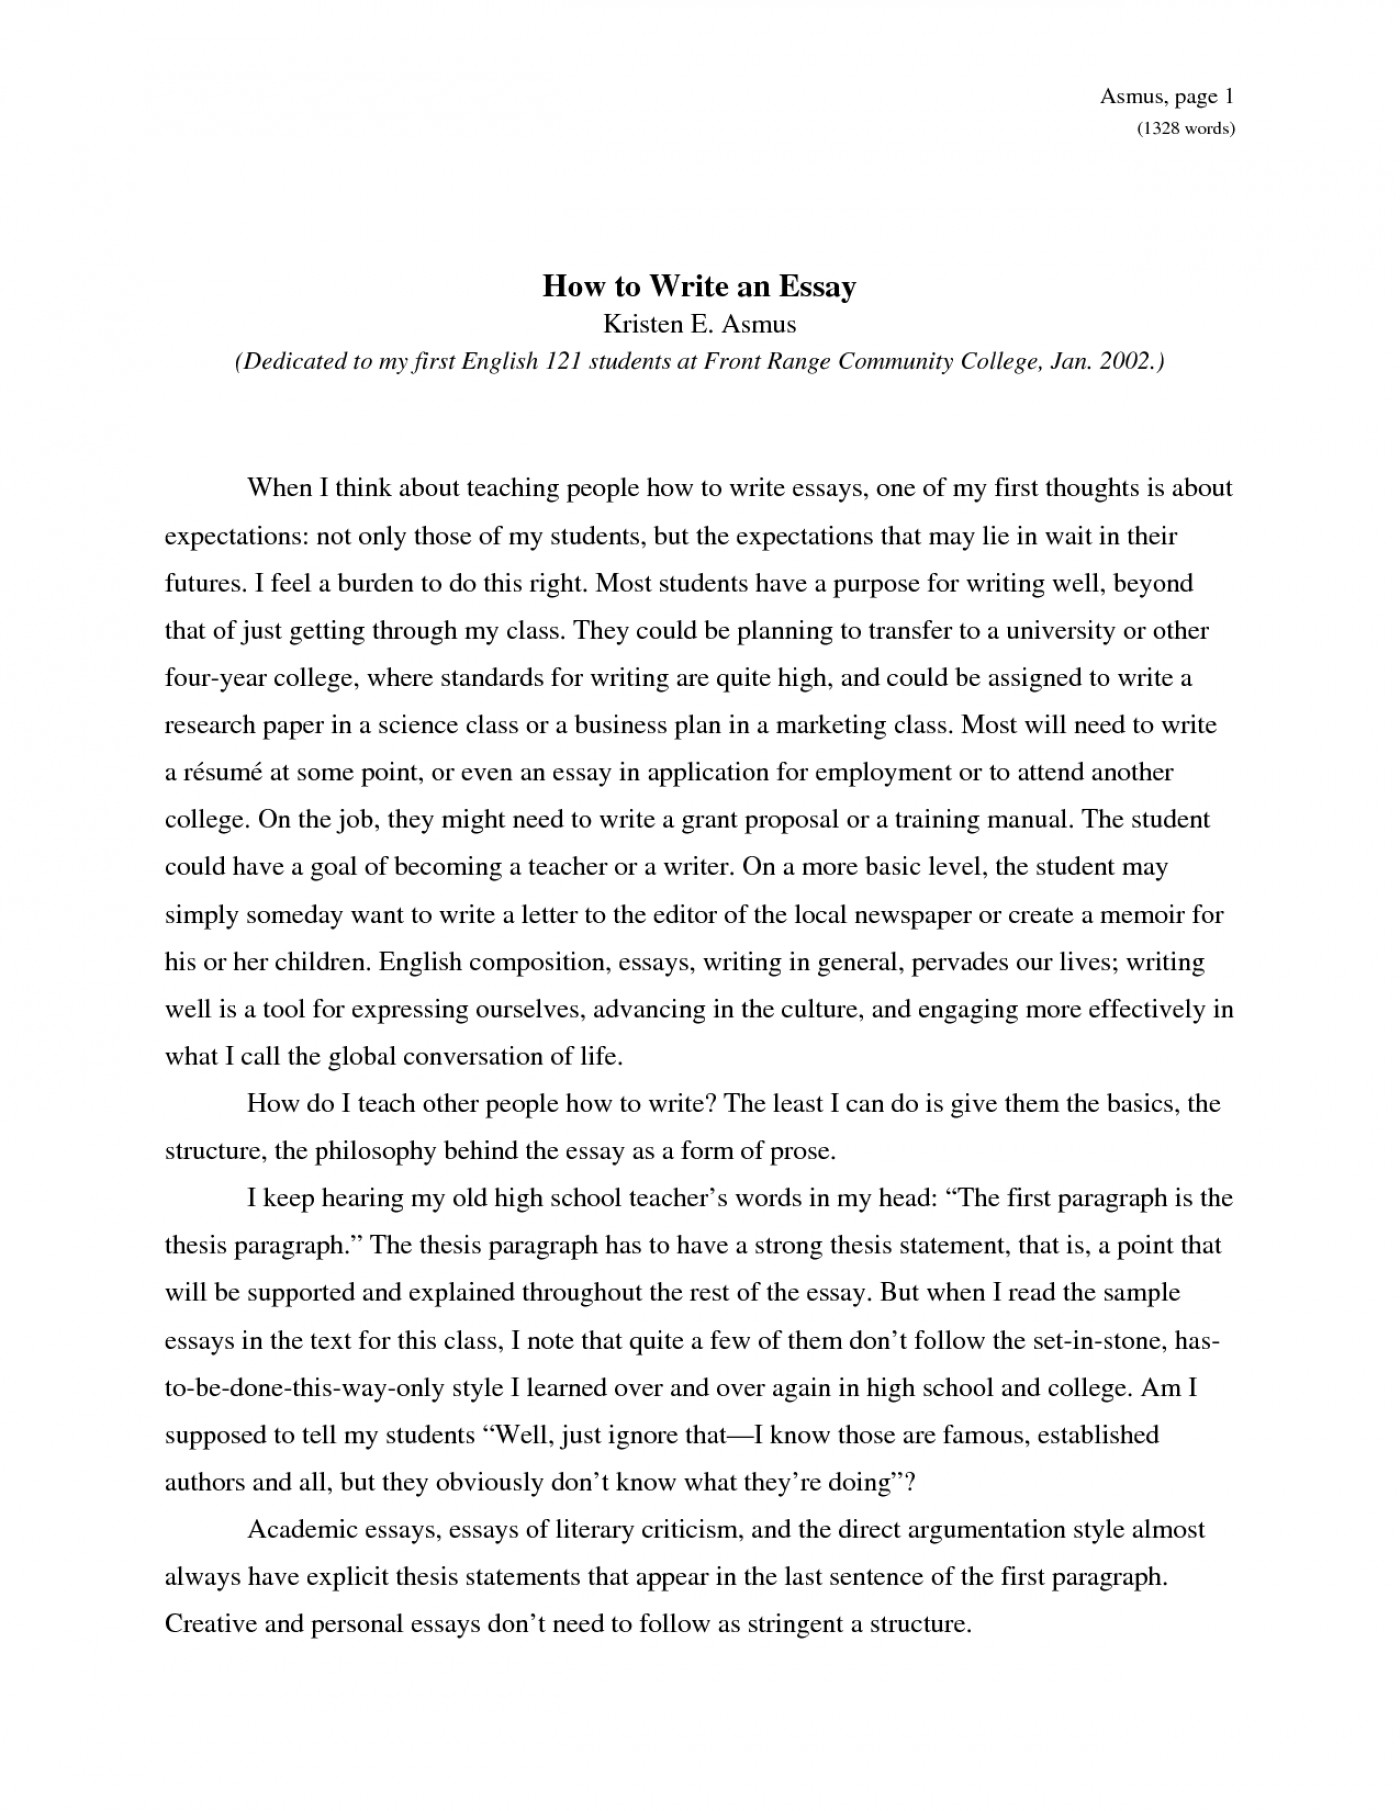 013 Essay Example How To Write An Obfuscata Sample Of L Shocking About Myself For A Scholarship Excellent Conclusion Pdf 1400